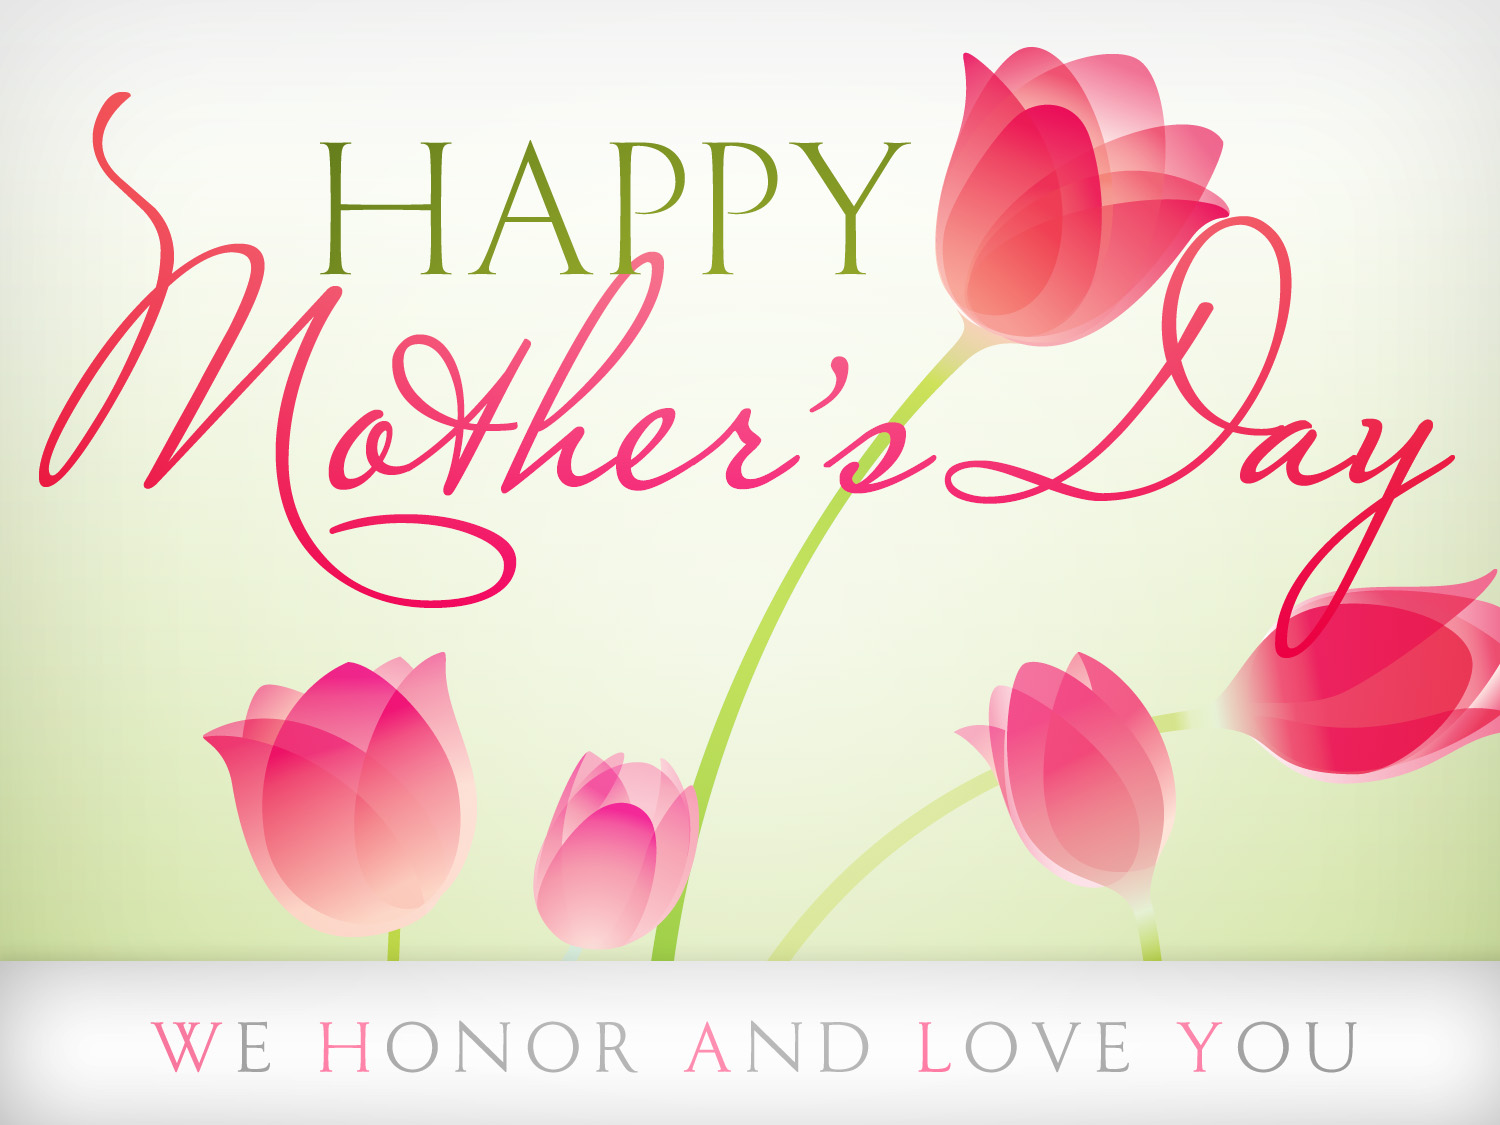 Happy mothers day images wallpaper and greetings polesmag happymothersday wallpapers 1024x768 m4hsunfo